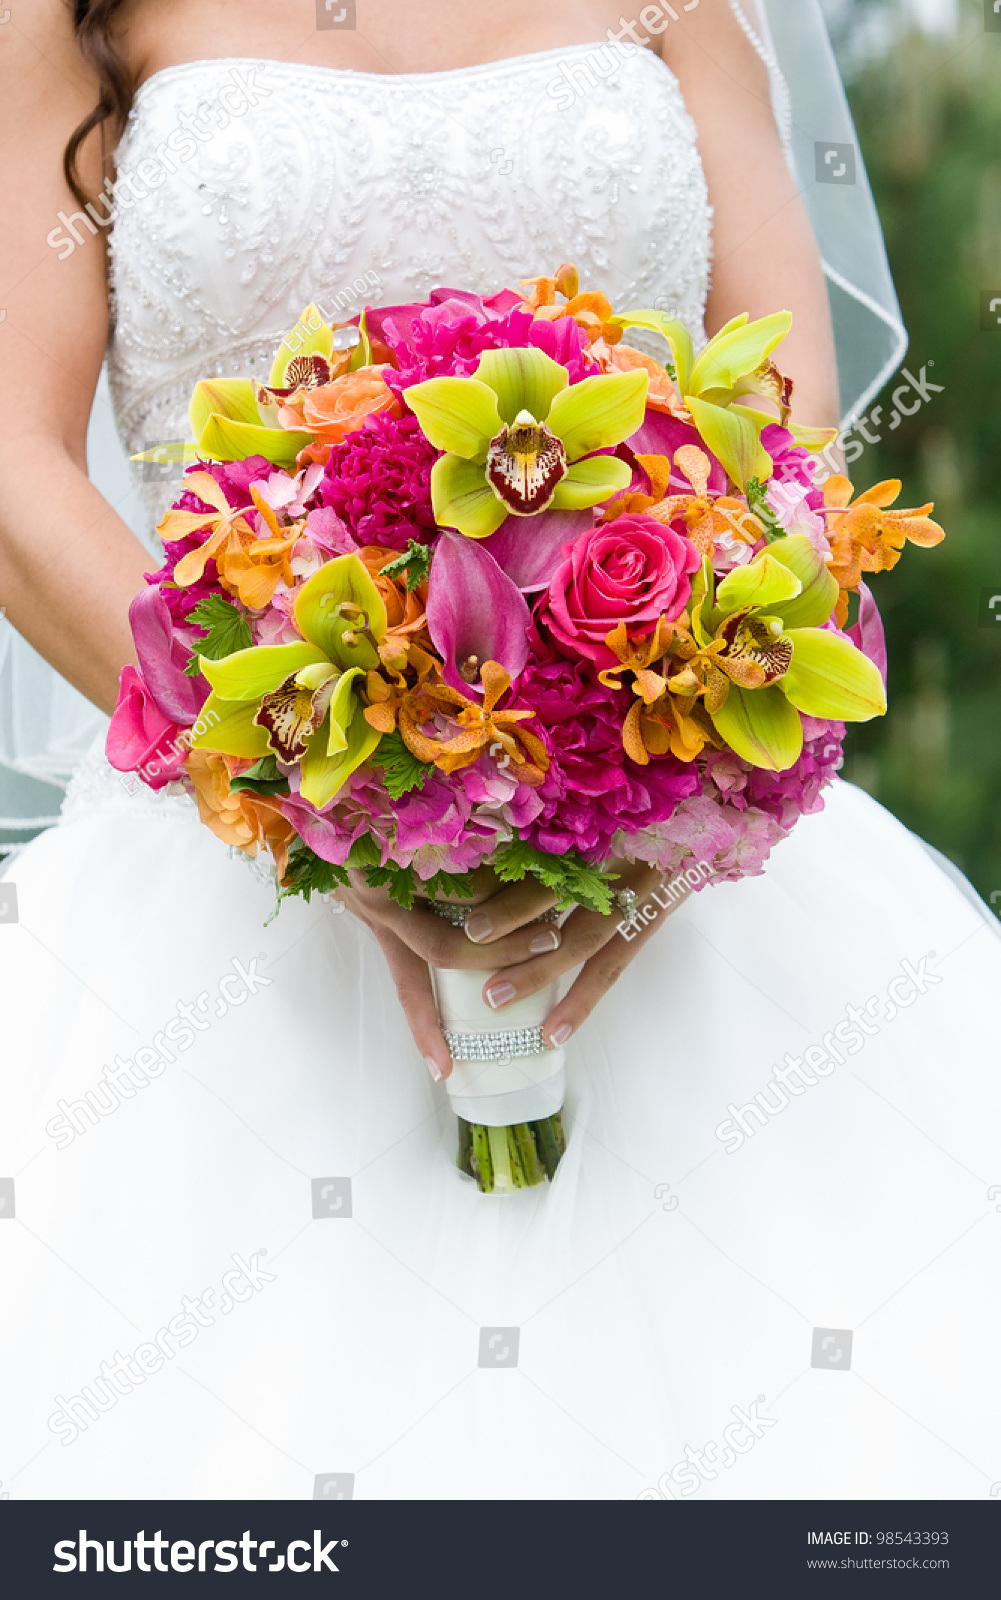 Wedding Bouquet Flowers Held By Bride Stock Photo Edit Now